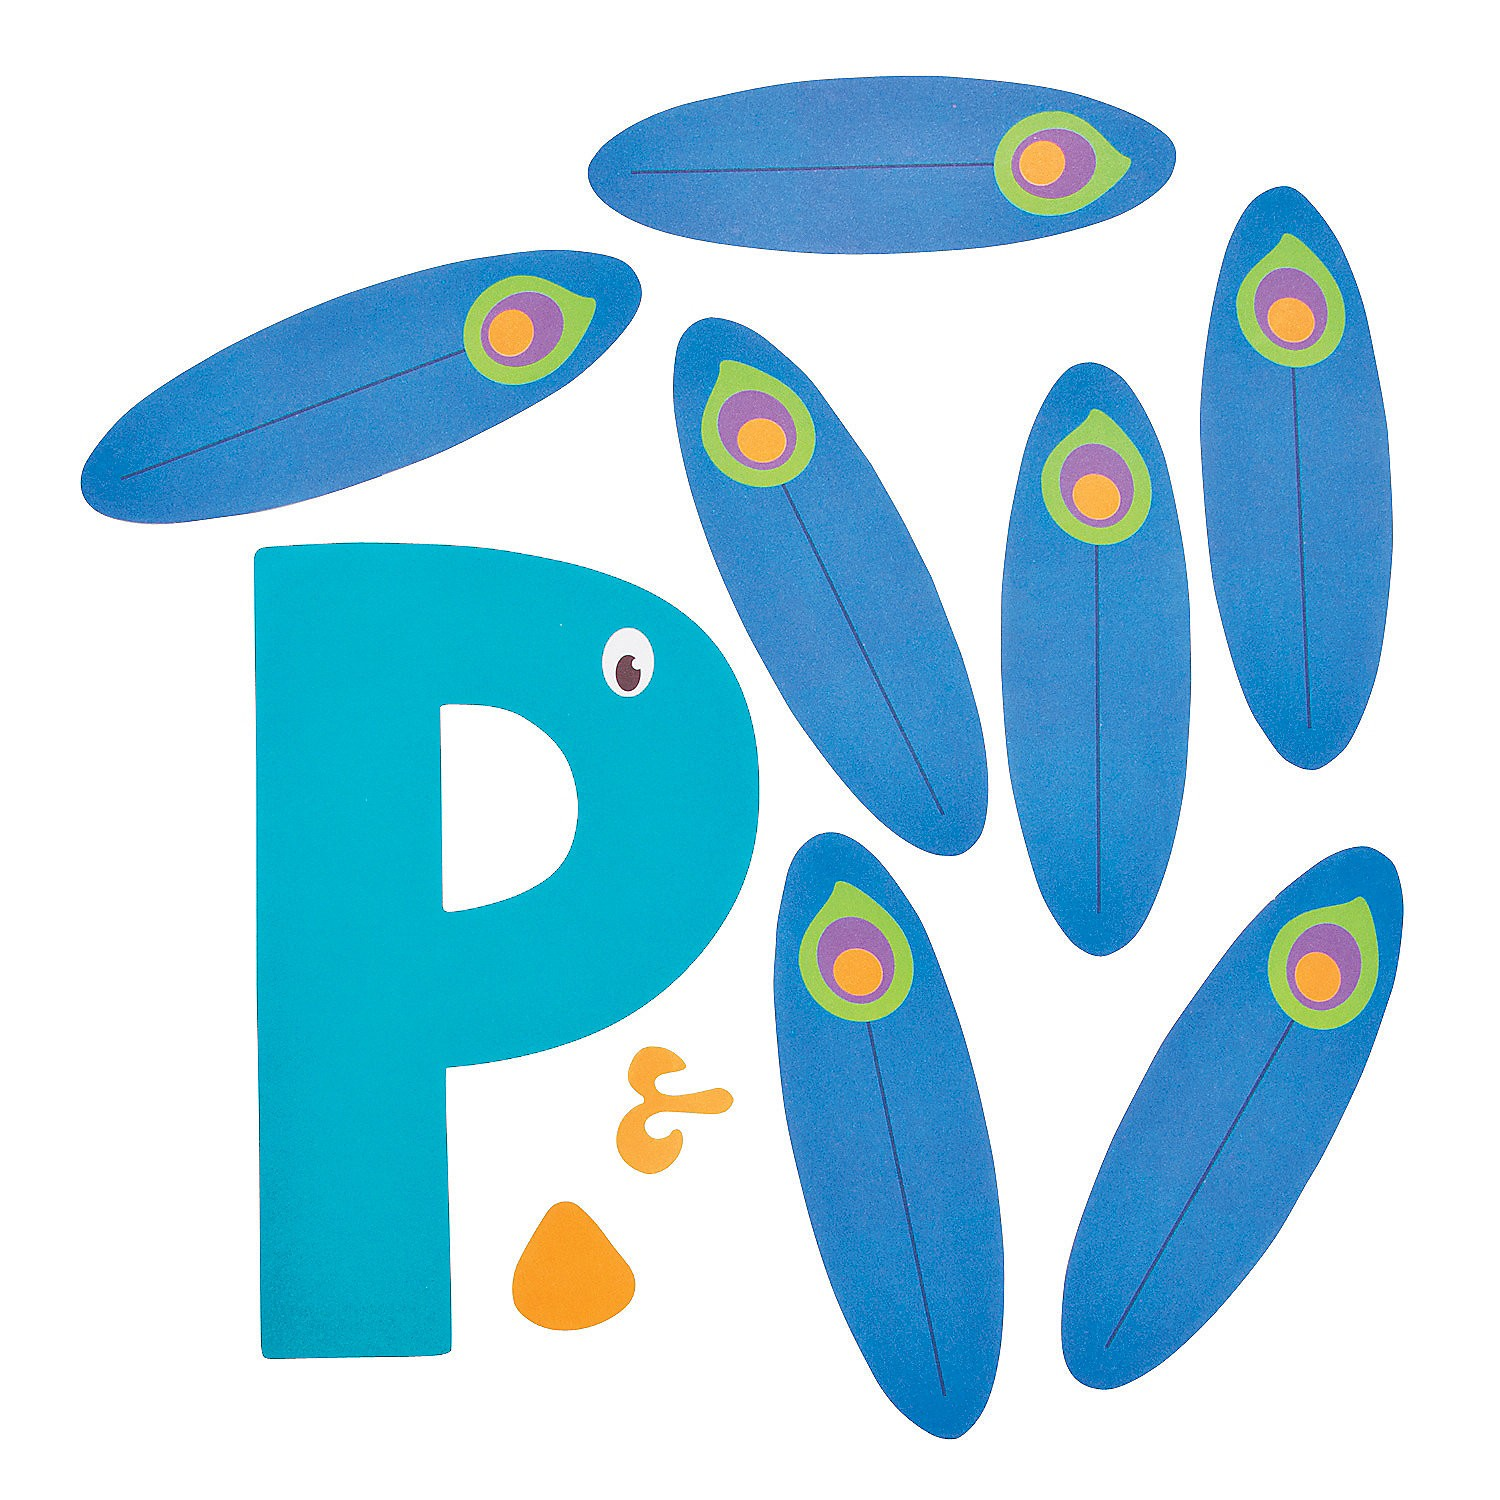 letter p craft template  Letter P Crafts İdeas for Preschool - Preschool and ..